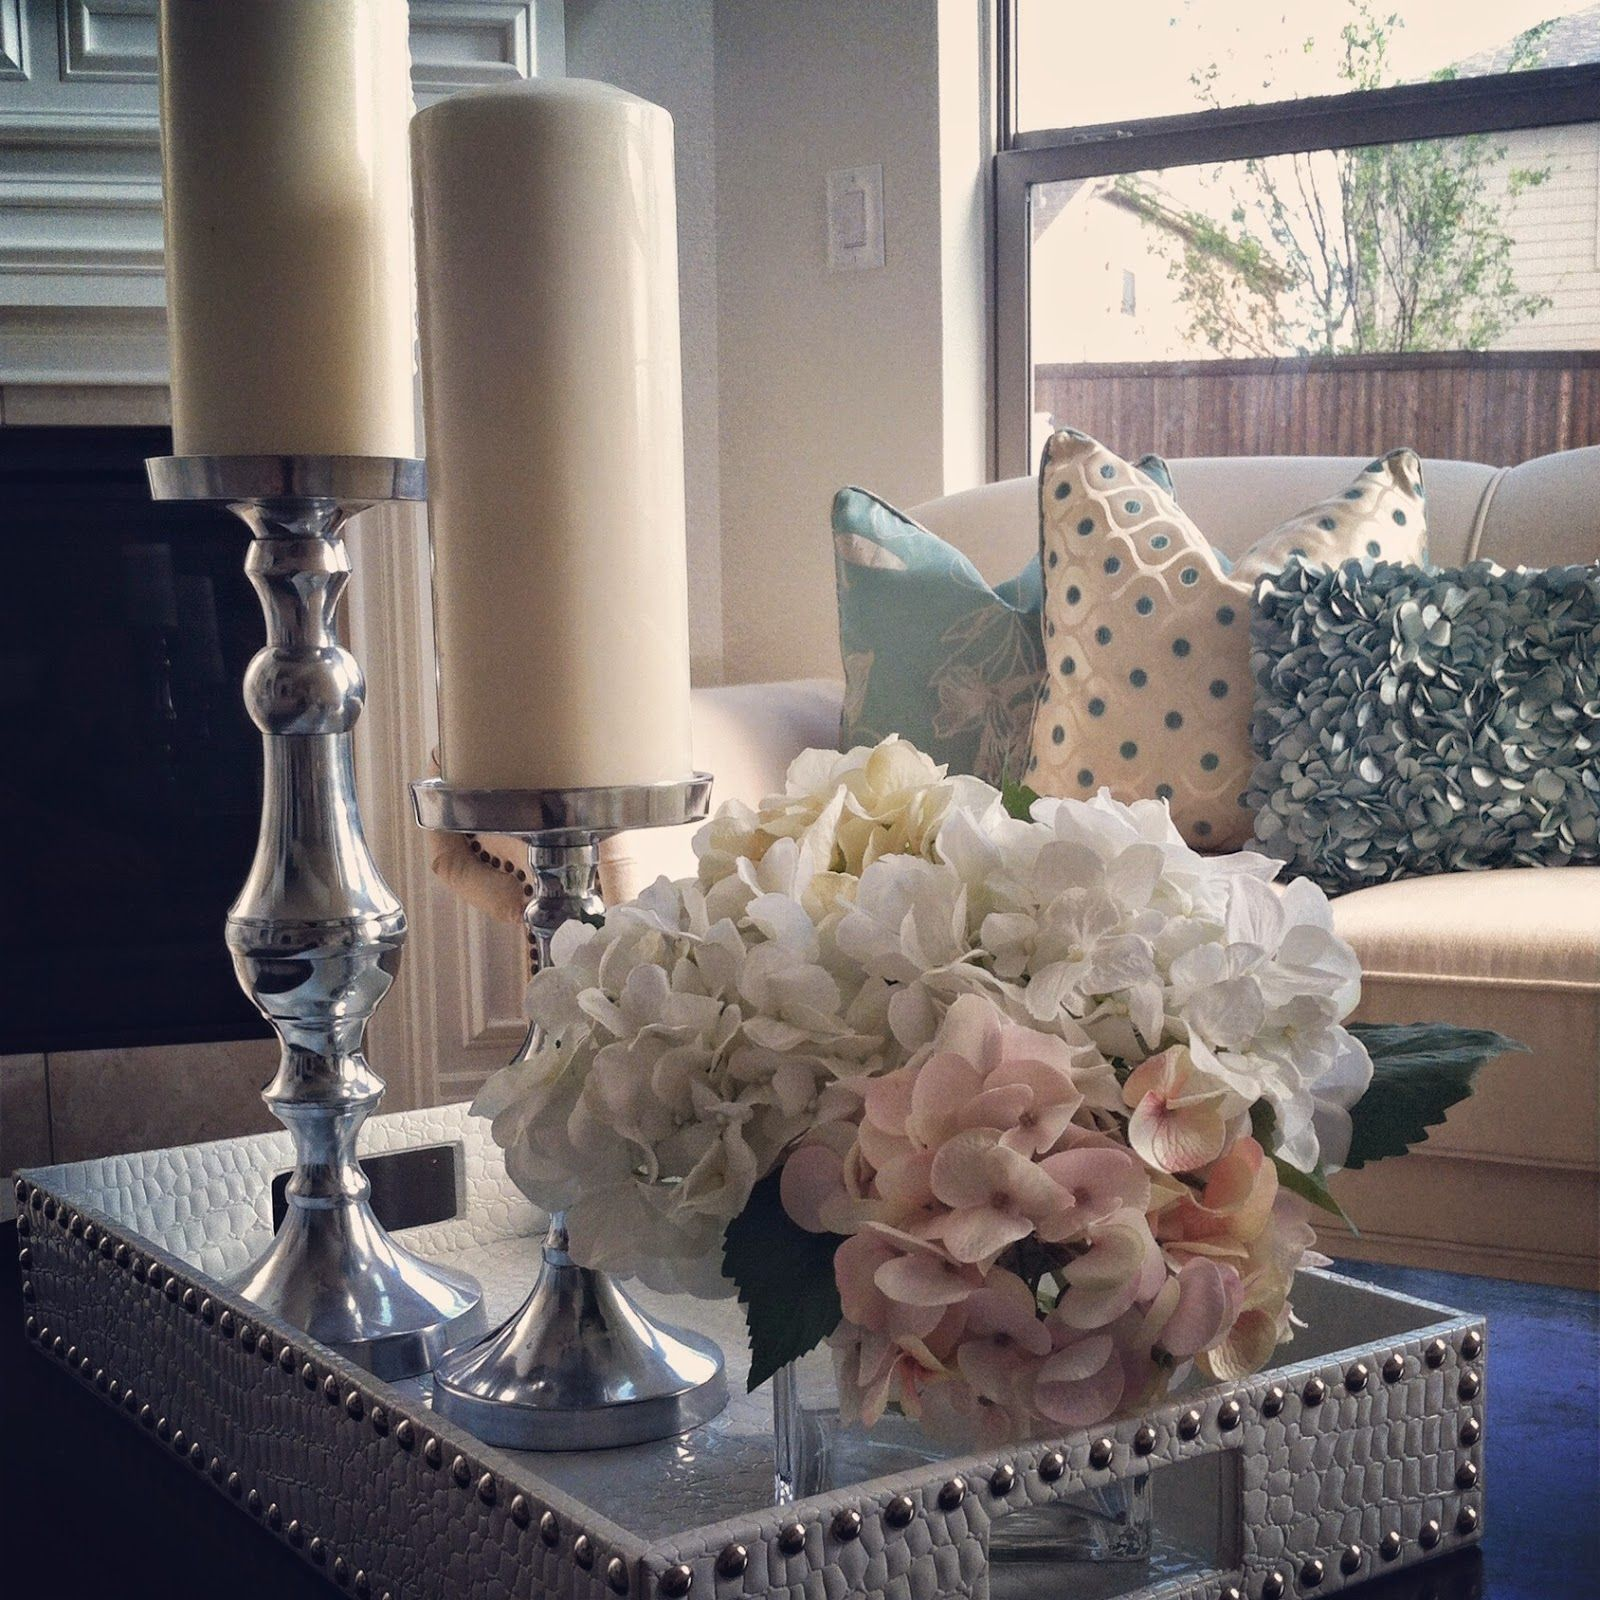 nissa lynn interiors my coffee table decor in the morning sunlight nissalynninteriors - Living Room Table Decor